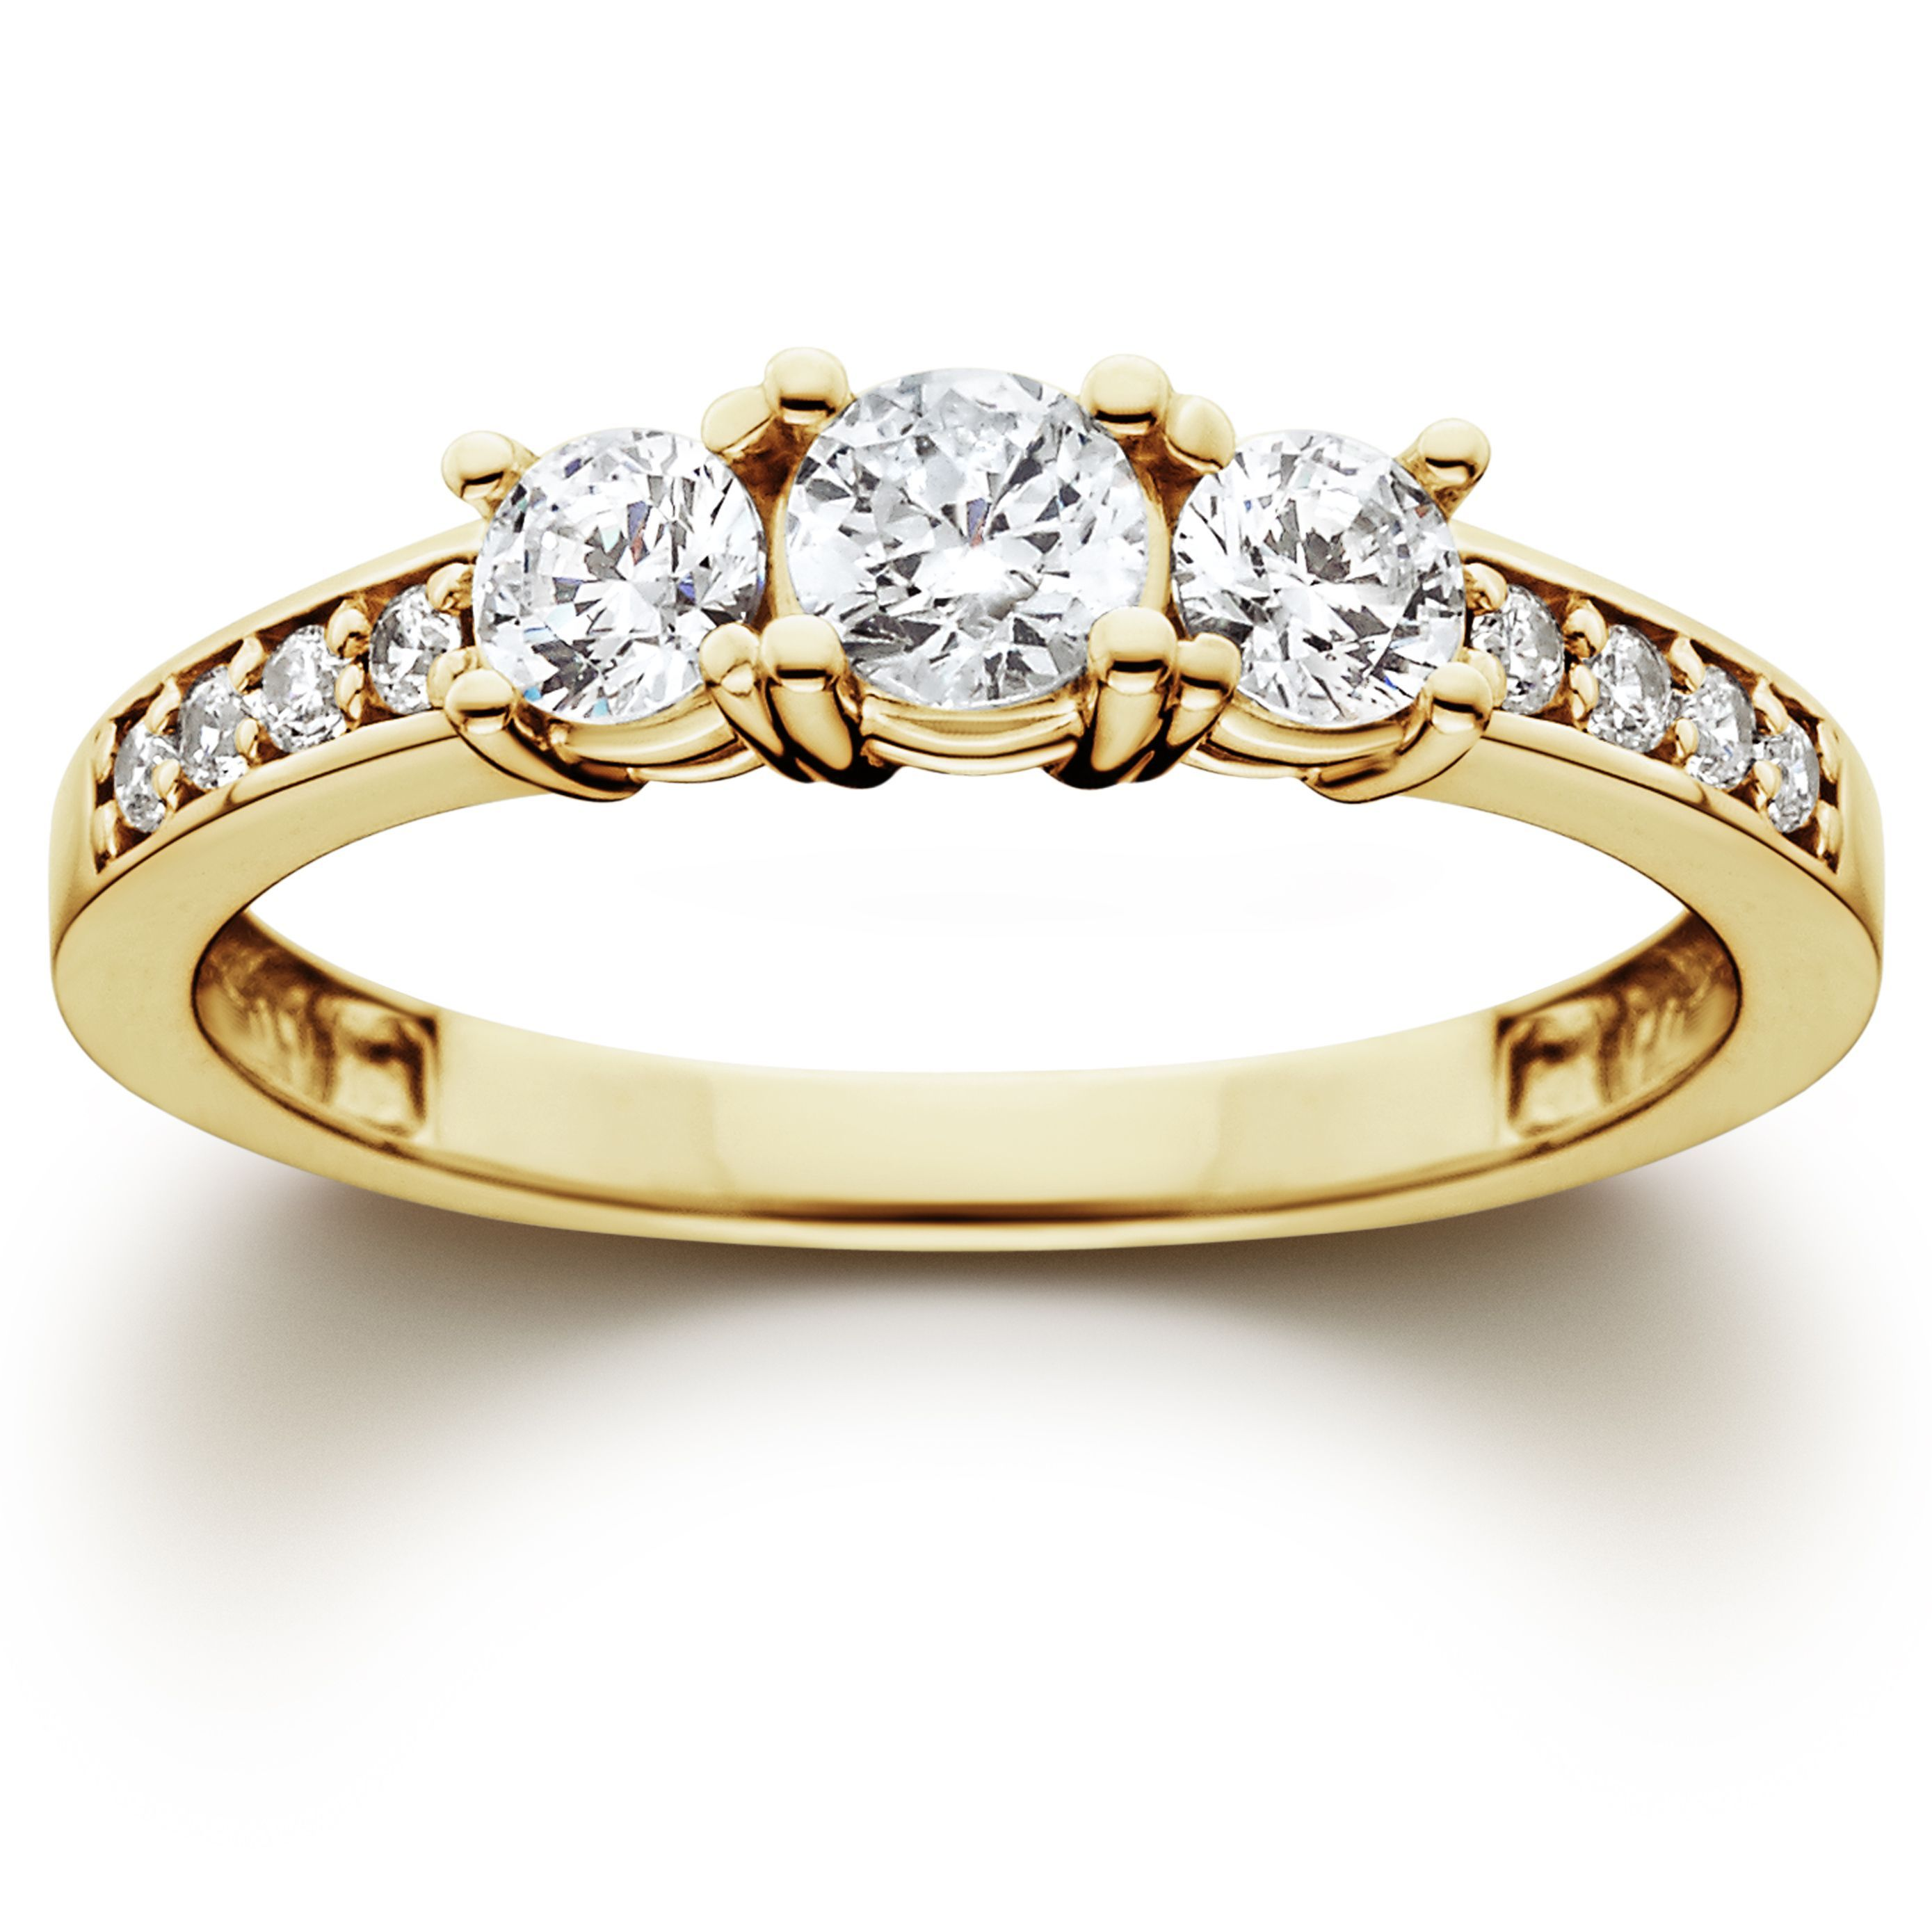 piece band wedding solid set ct rings gold ring products engagement yellow princess cut